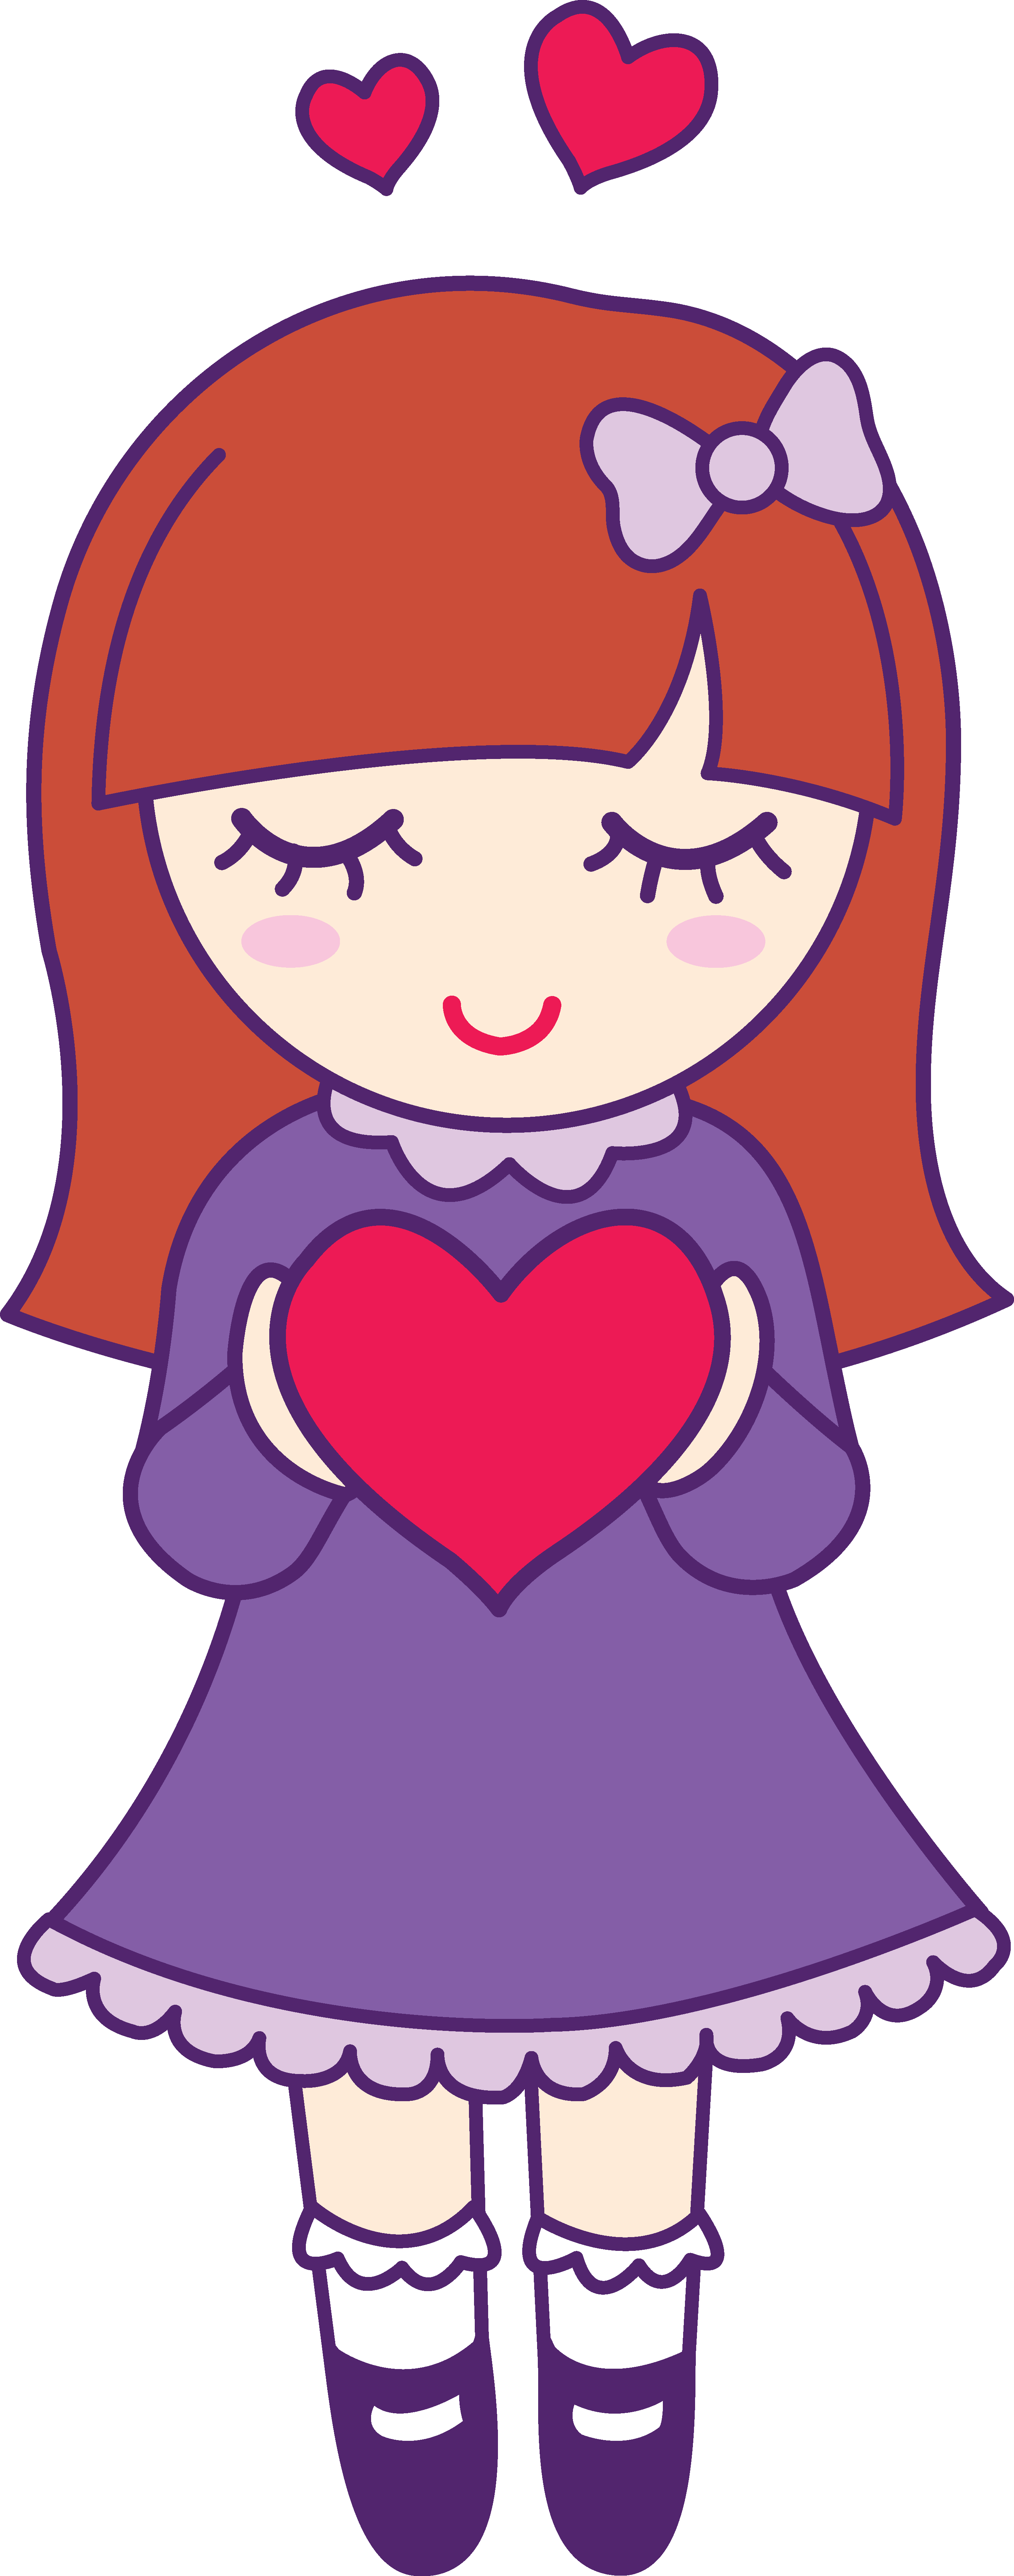 Valentine clipart cute. Girl panda free images